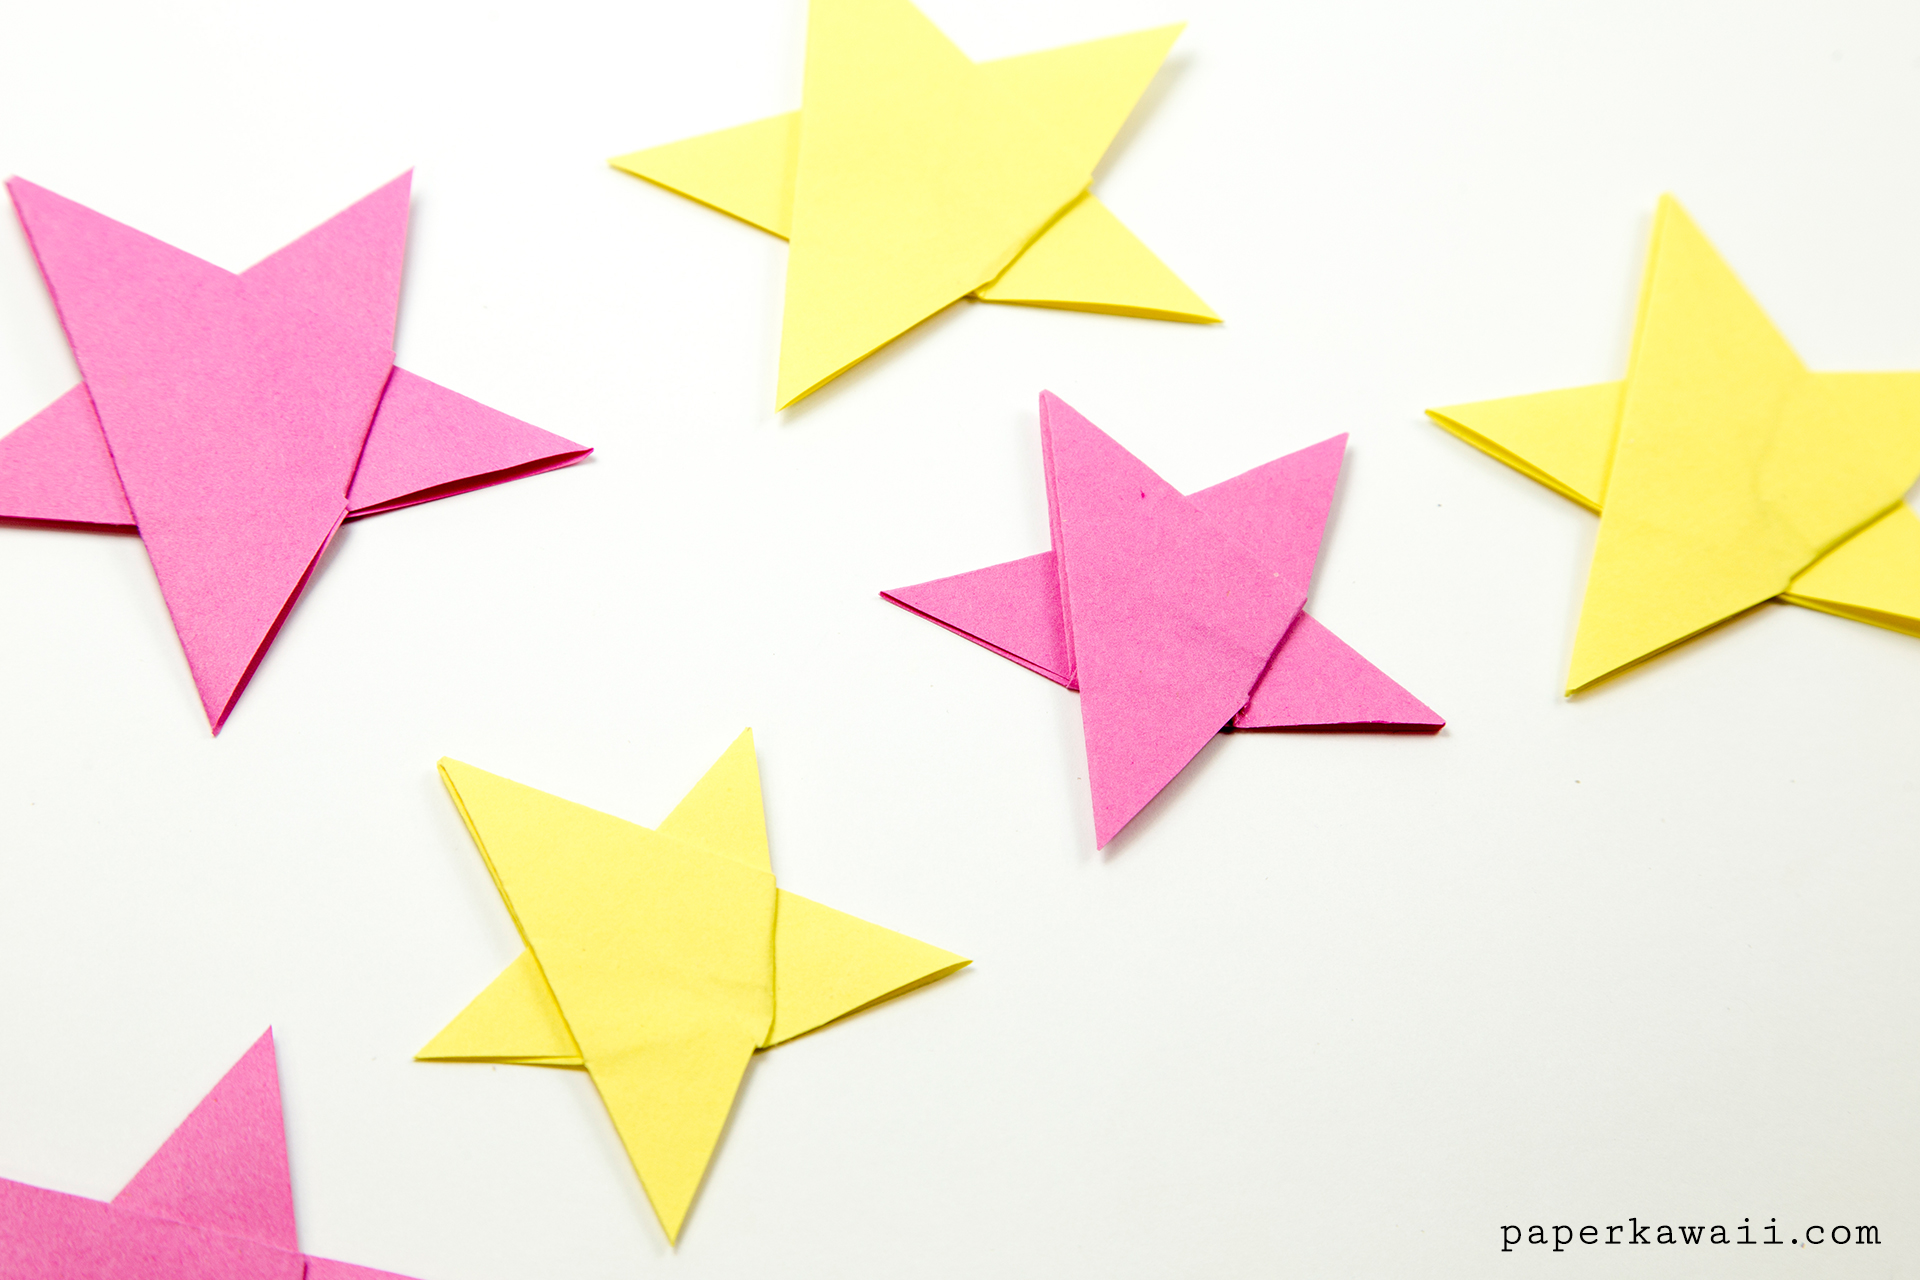 Simple Origami 5 Point Star Tutorial - 1 Sheet - Paper Kawaii - photo#23